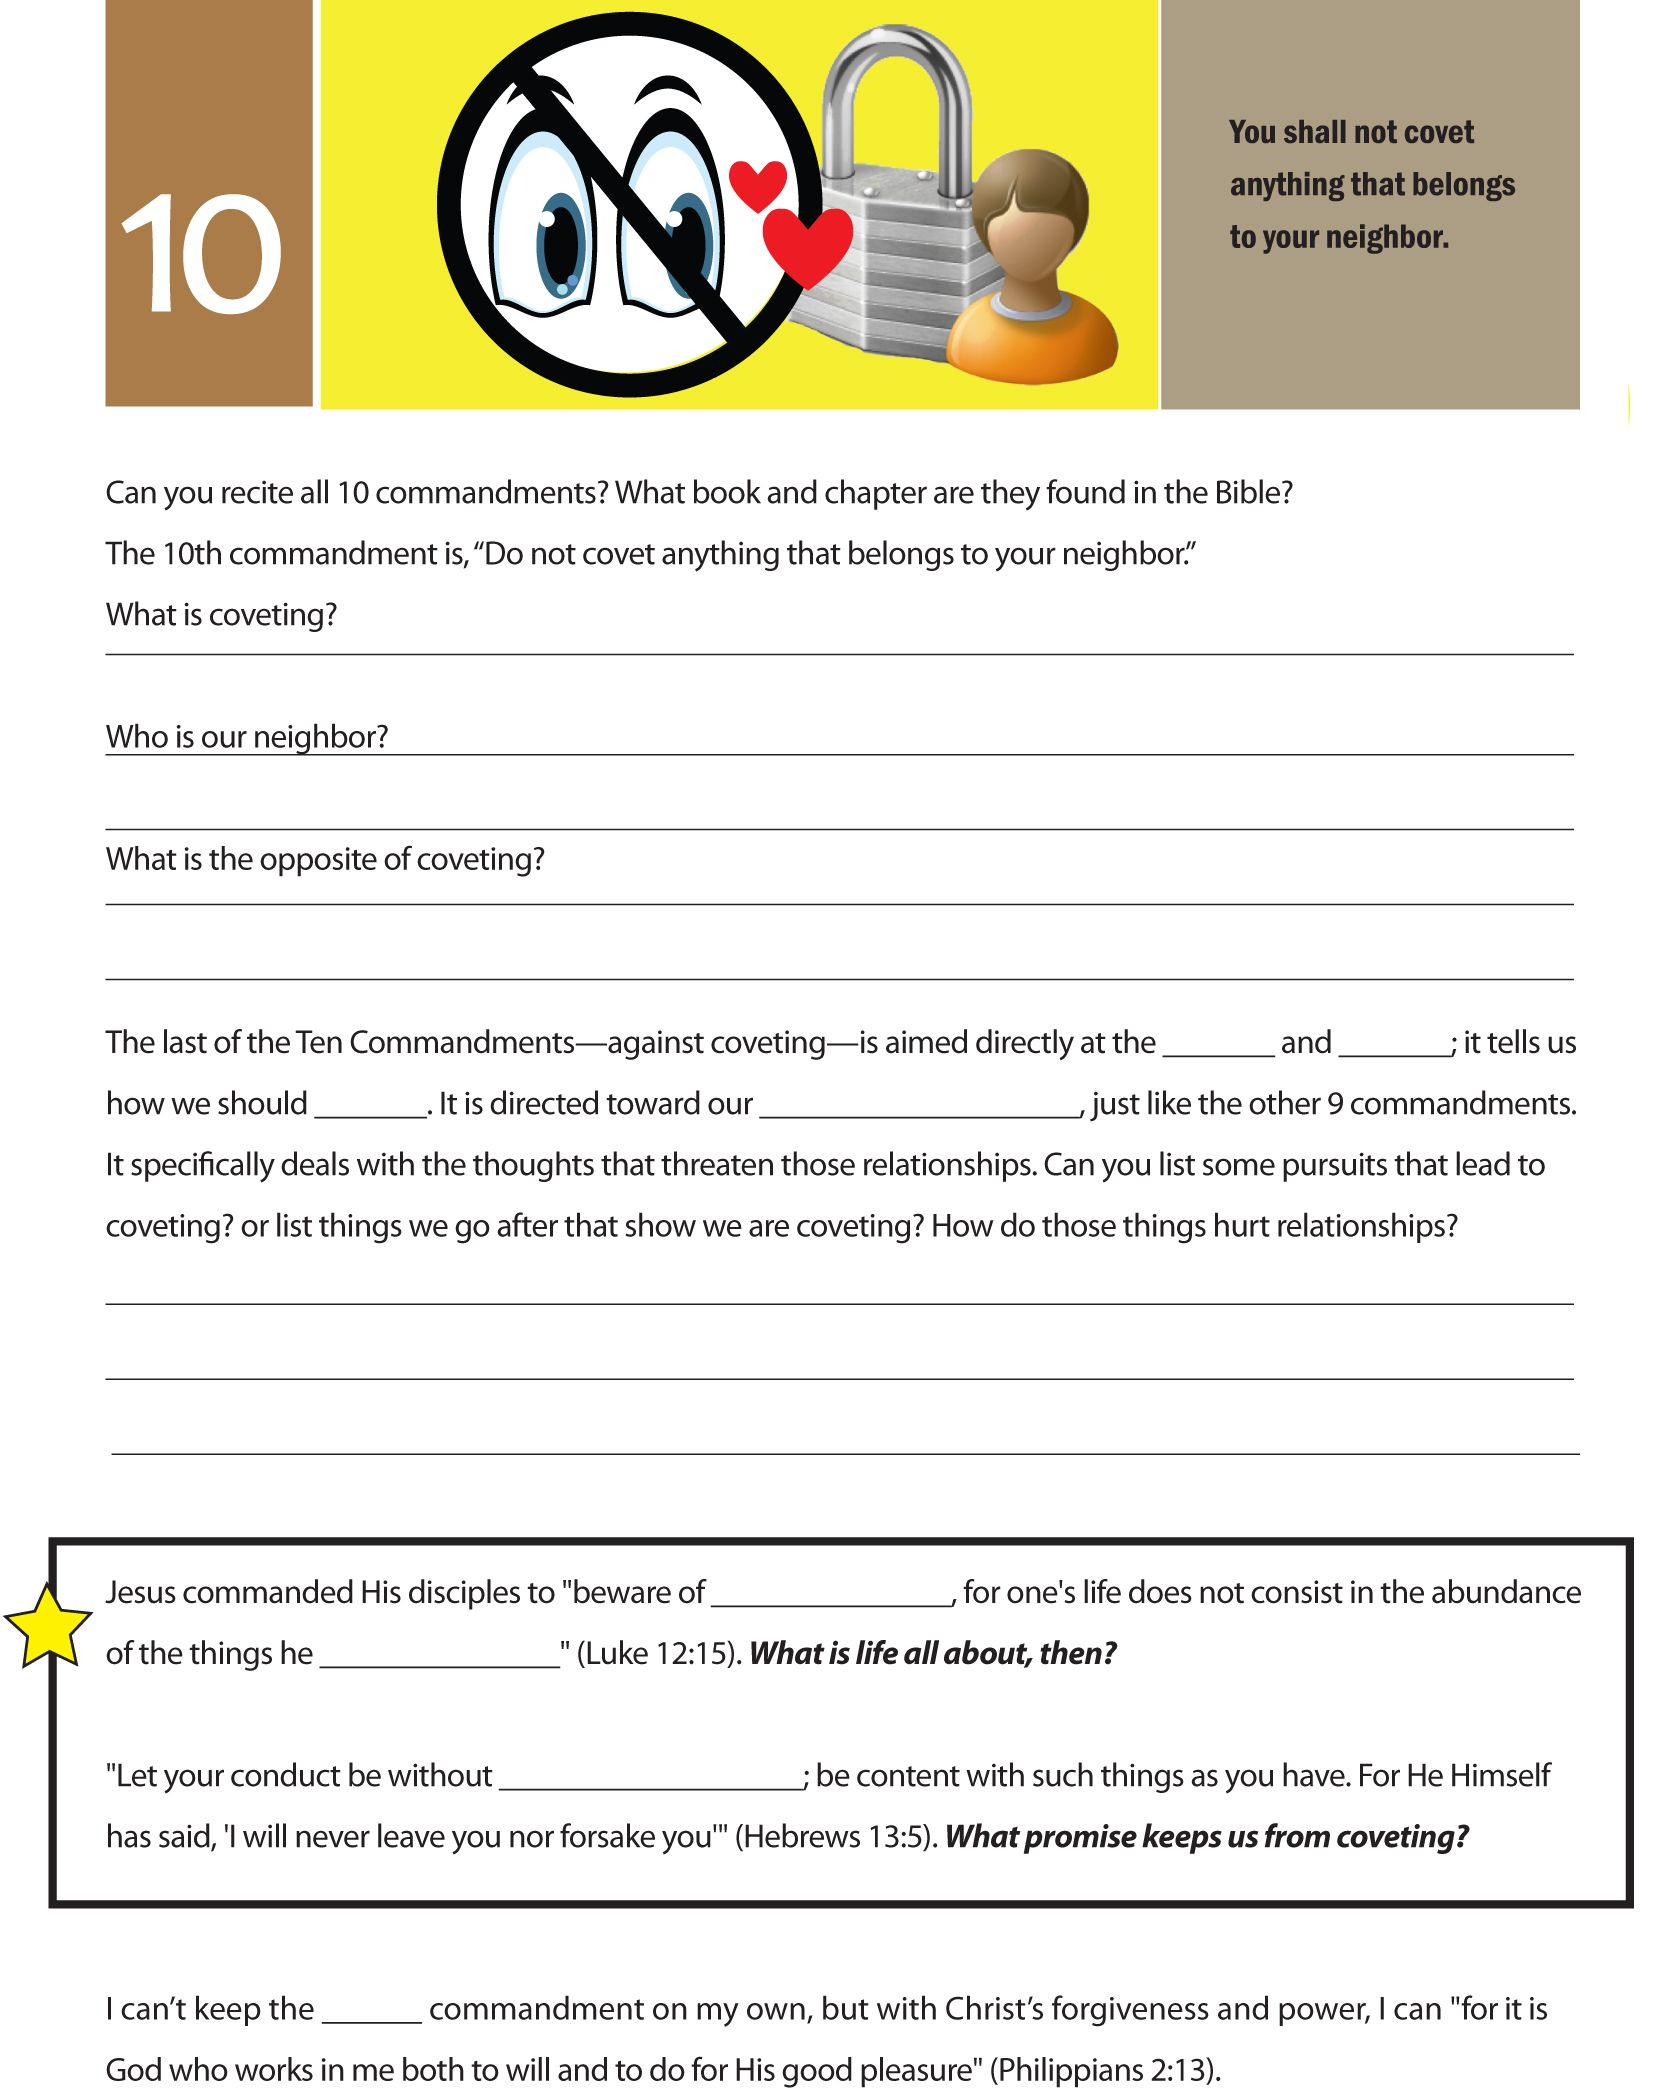 Worksheet To Teach The Tenth Of The 10 Commandments Do